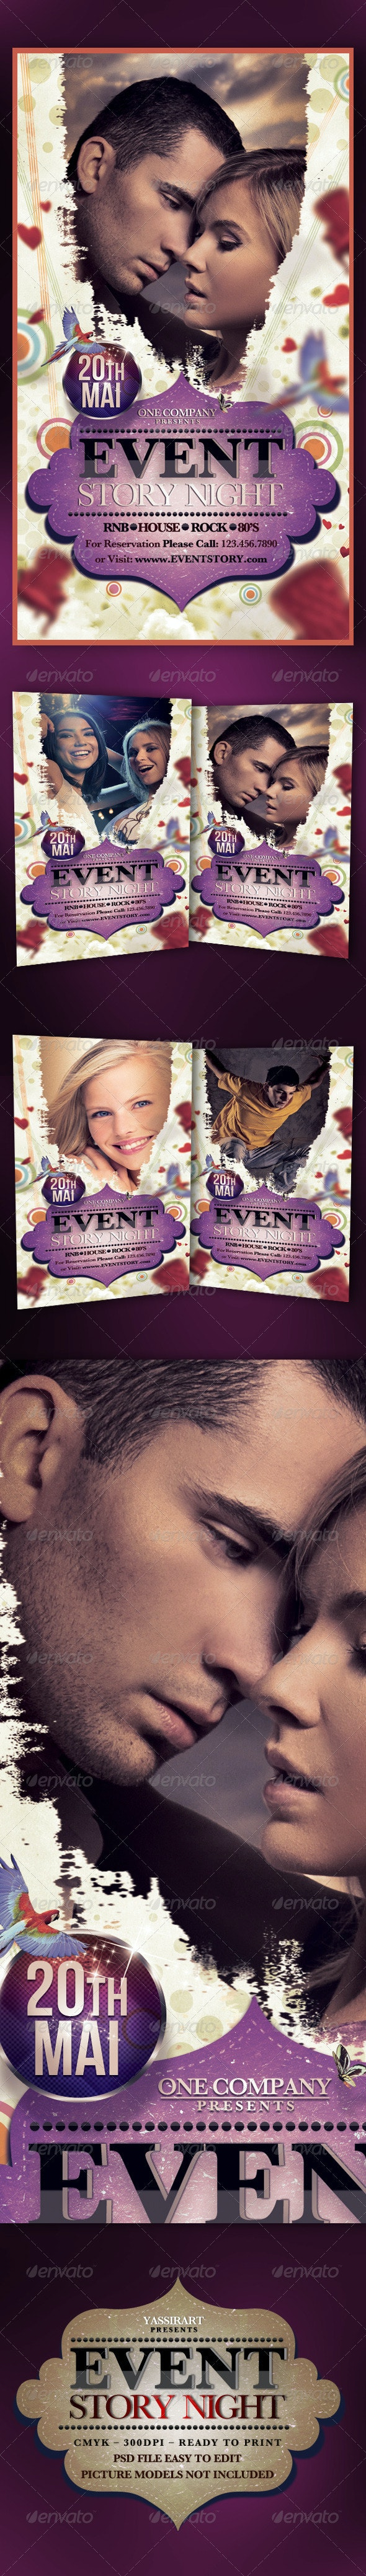 Event Story Night Flyer - Clubs & Parties Events